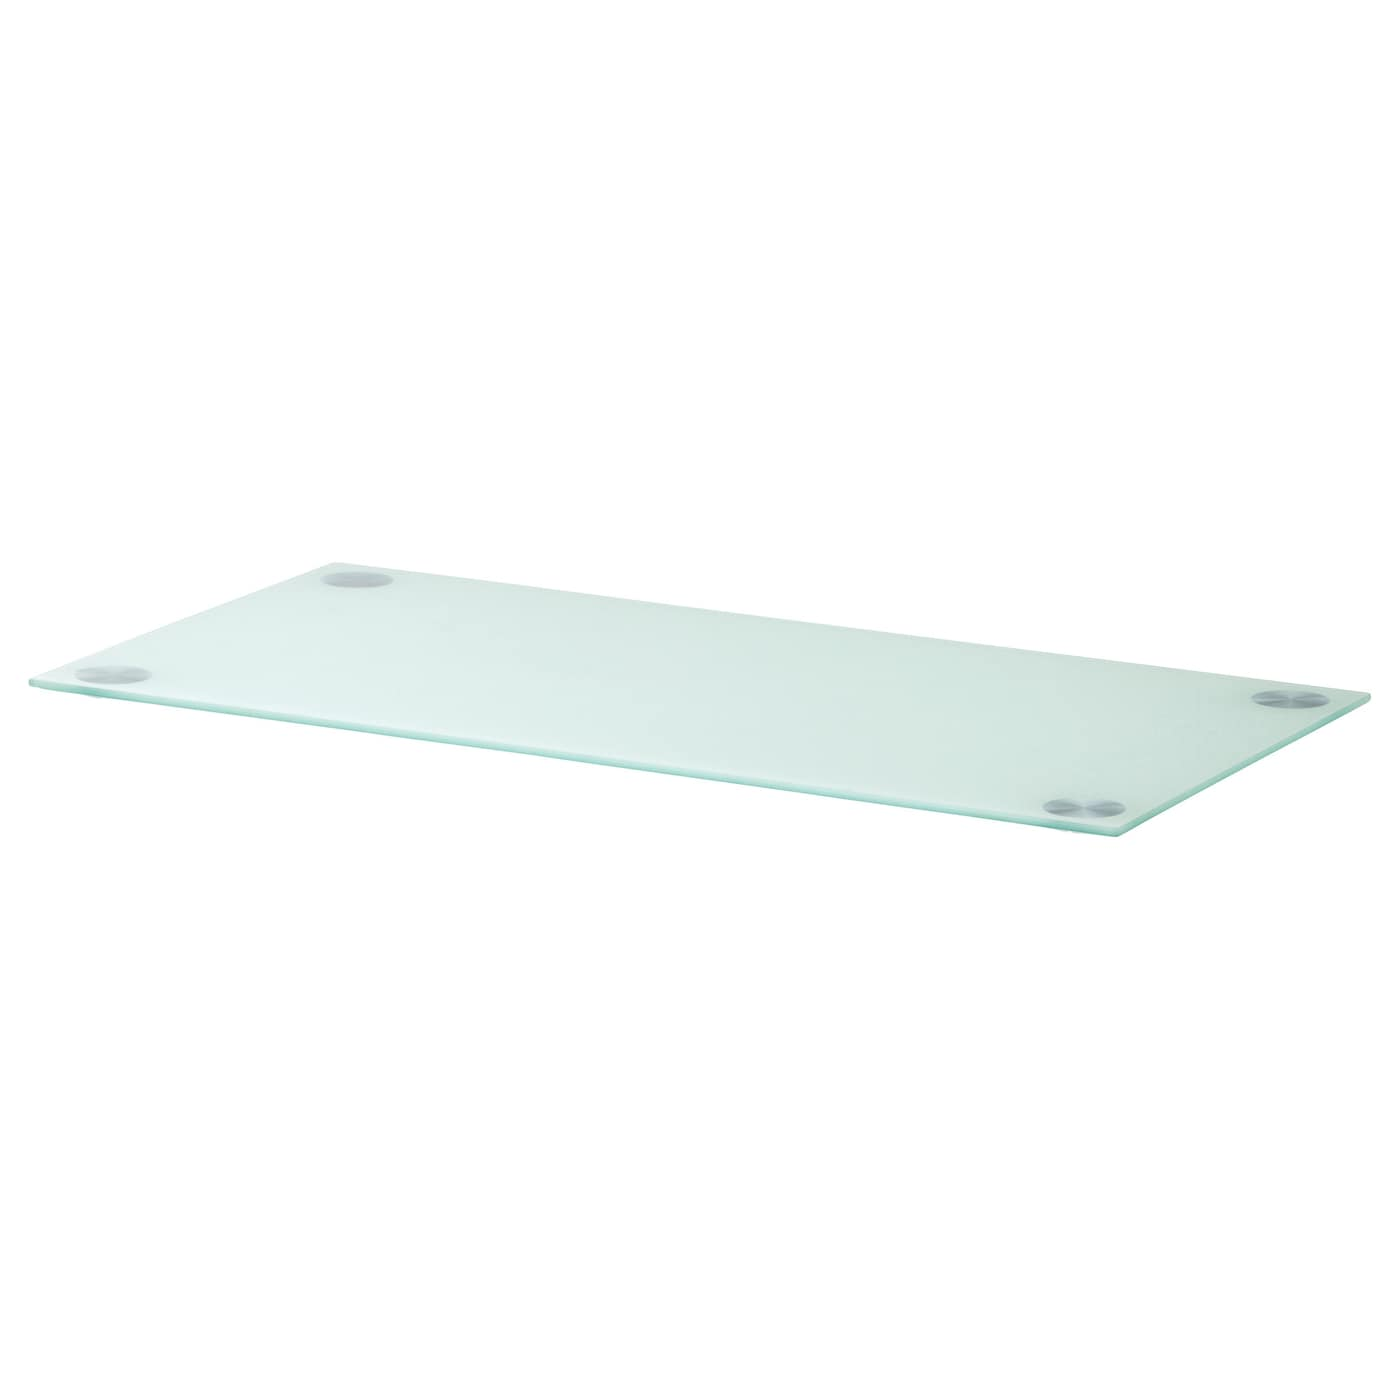 Glasholm table top glass white 99x52 cm ikea for Ikea glass table tops